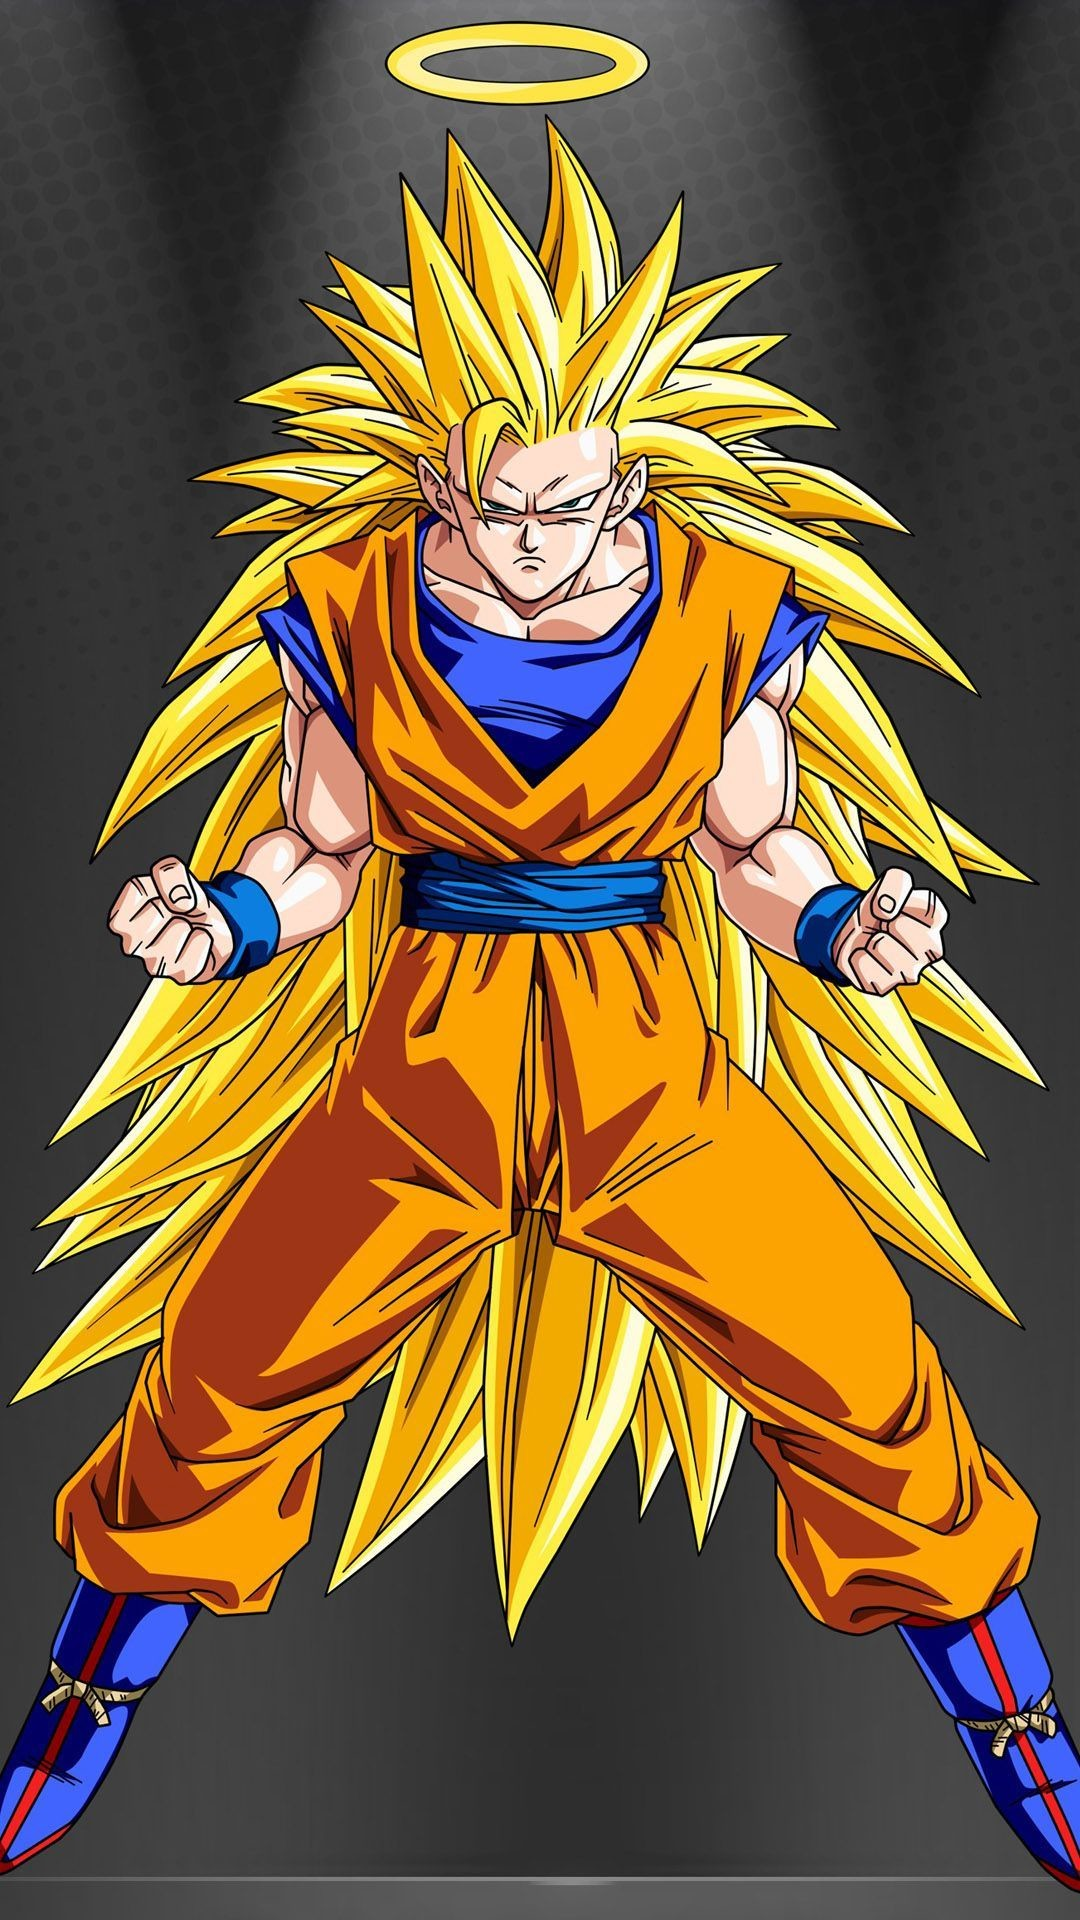 Wallpaper dragon ball z goku 73 images - Images dragon ball z ...